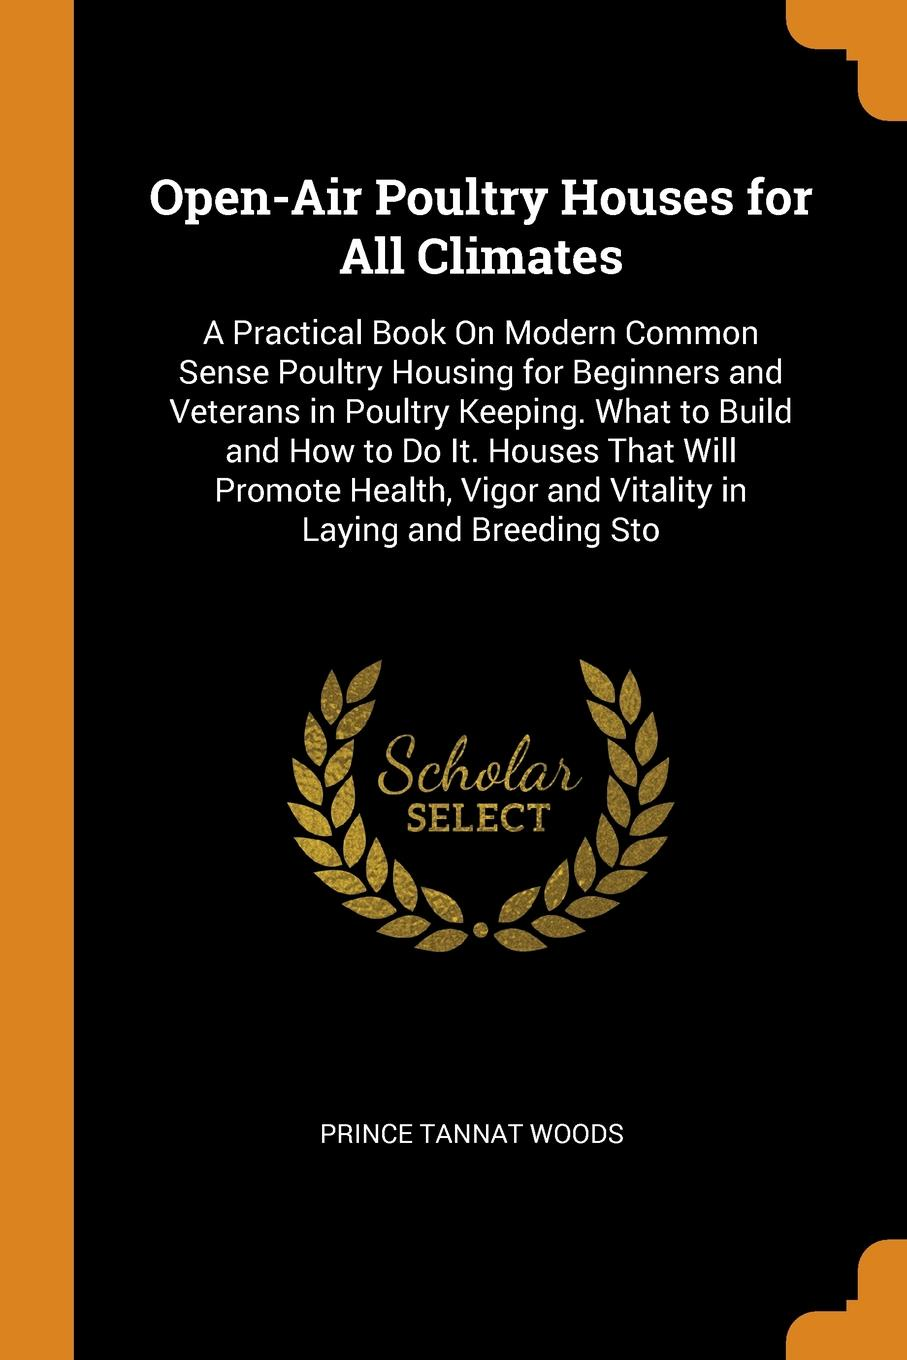 Prince Tannat Woods Open-Air Poultry Houses for All Climates. A Practical Book On Modern Common Sense Housing Beginners and Veterans in Keeping. What to Build How Do It. That Will Promote Health, Vigor Vitality Laying Bree...